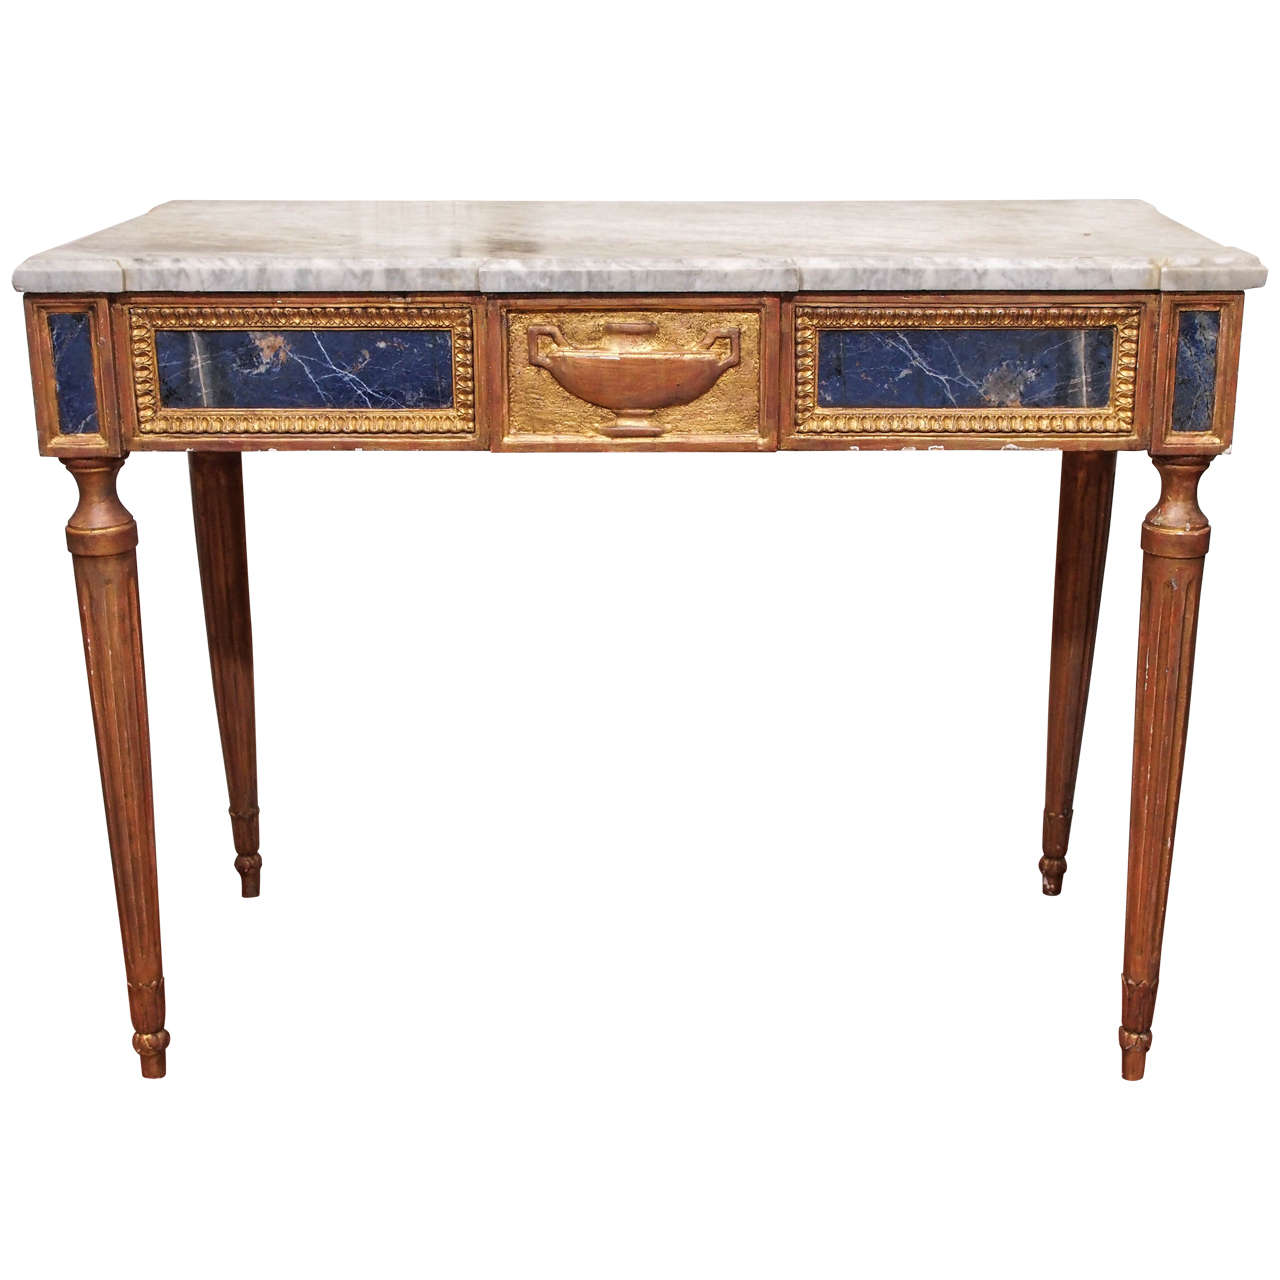 italian louis xvi console table with lapis lazuli panels for sale at 1stdibs. Black Bedroom Furniture Sets. Home Design Ideas